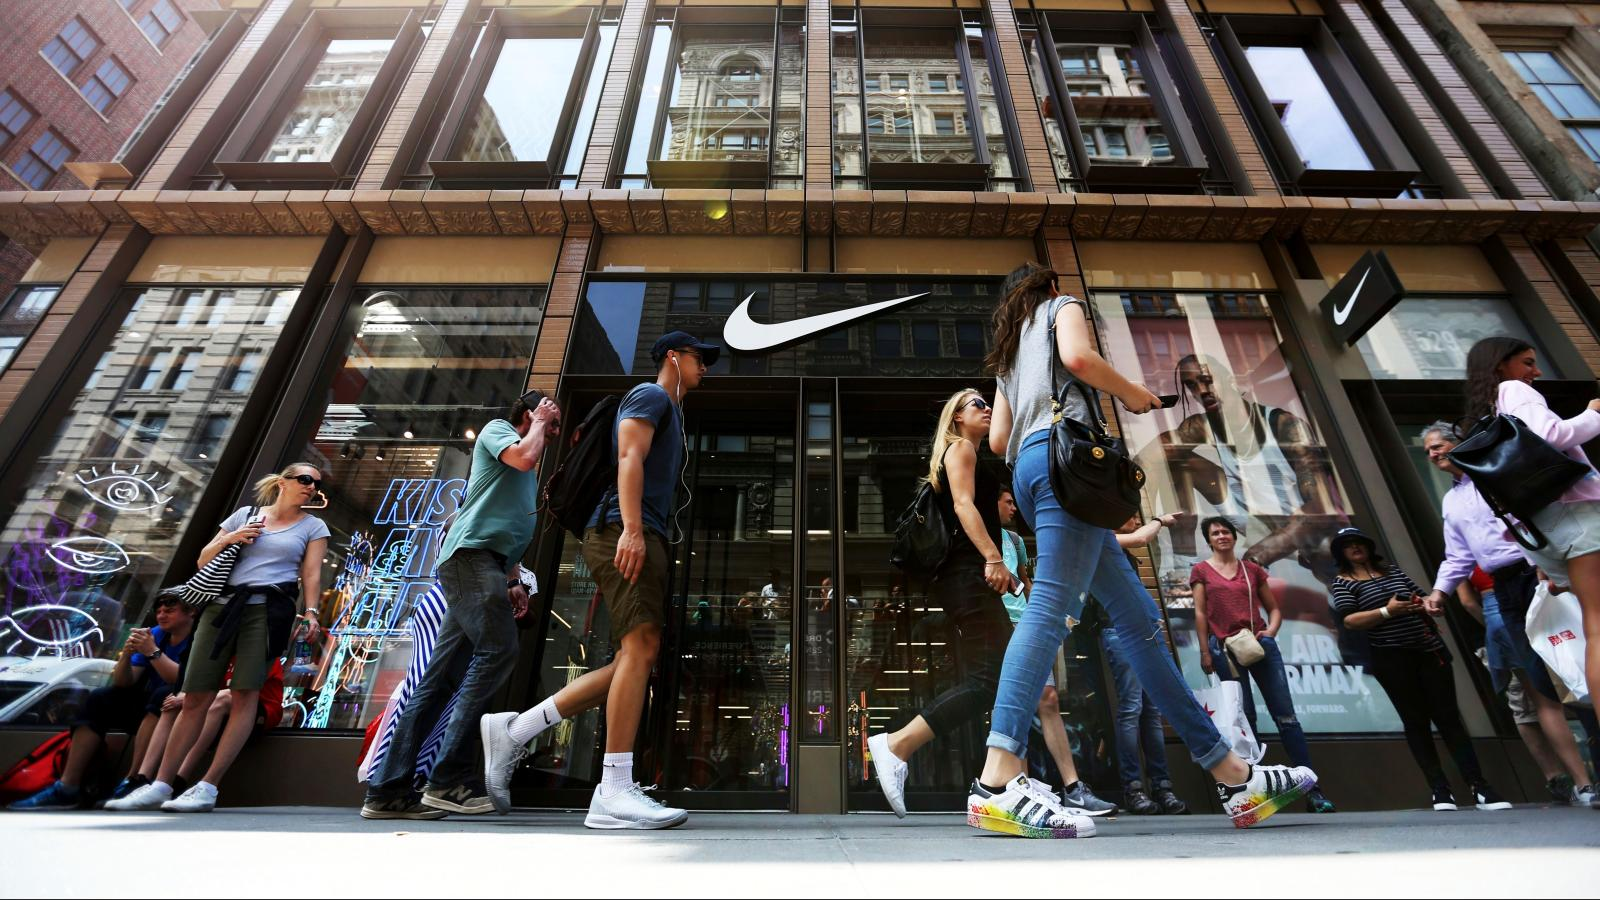 Nike is losing popularity to Adidas and Vans among teens, survey